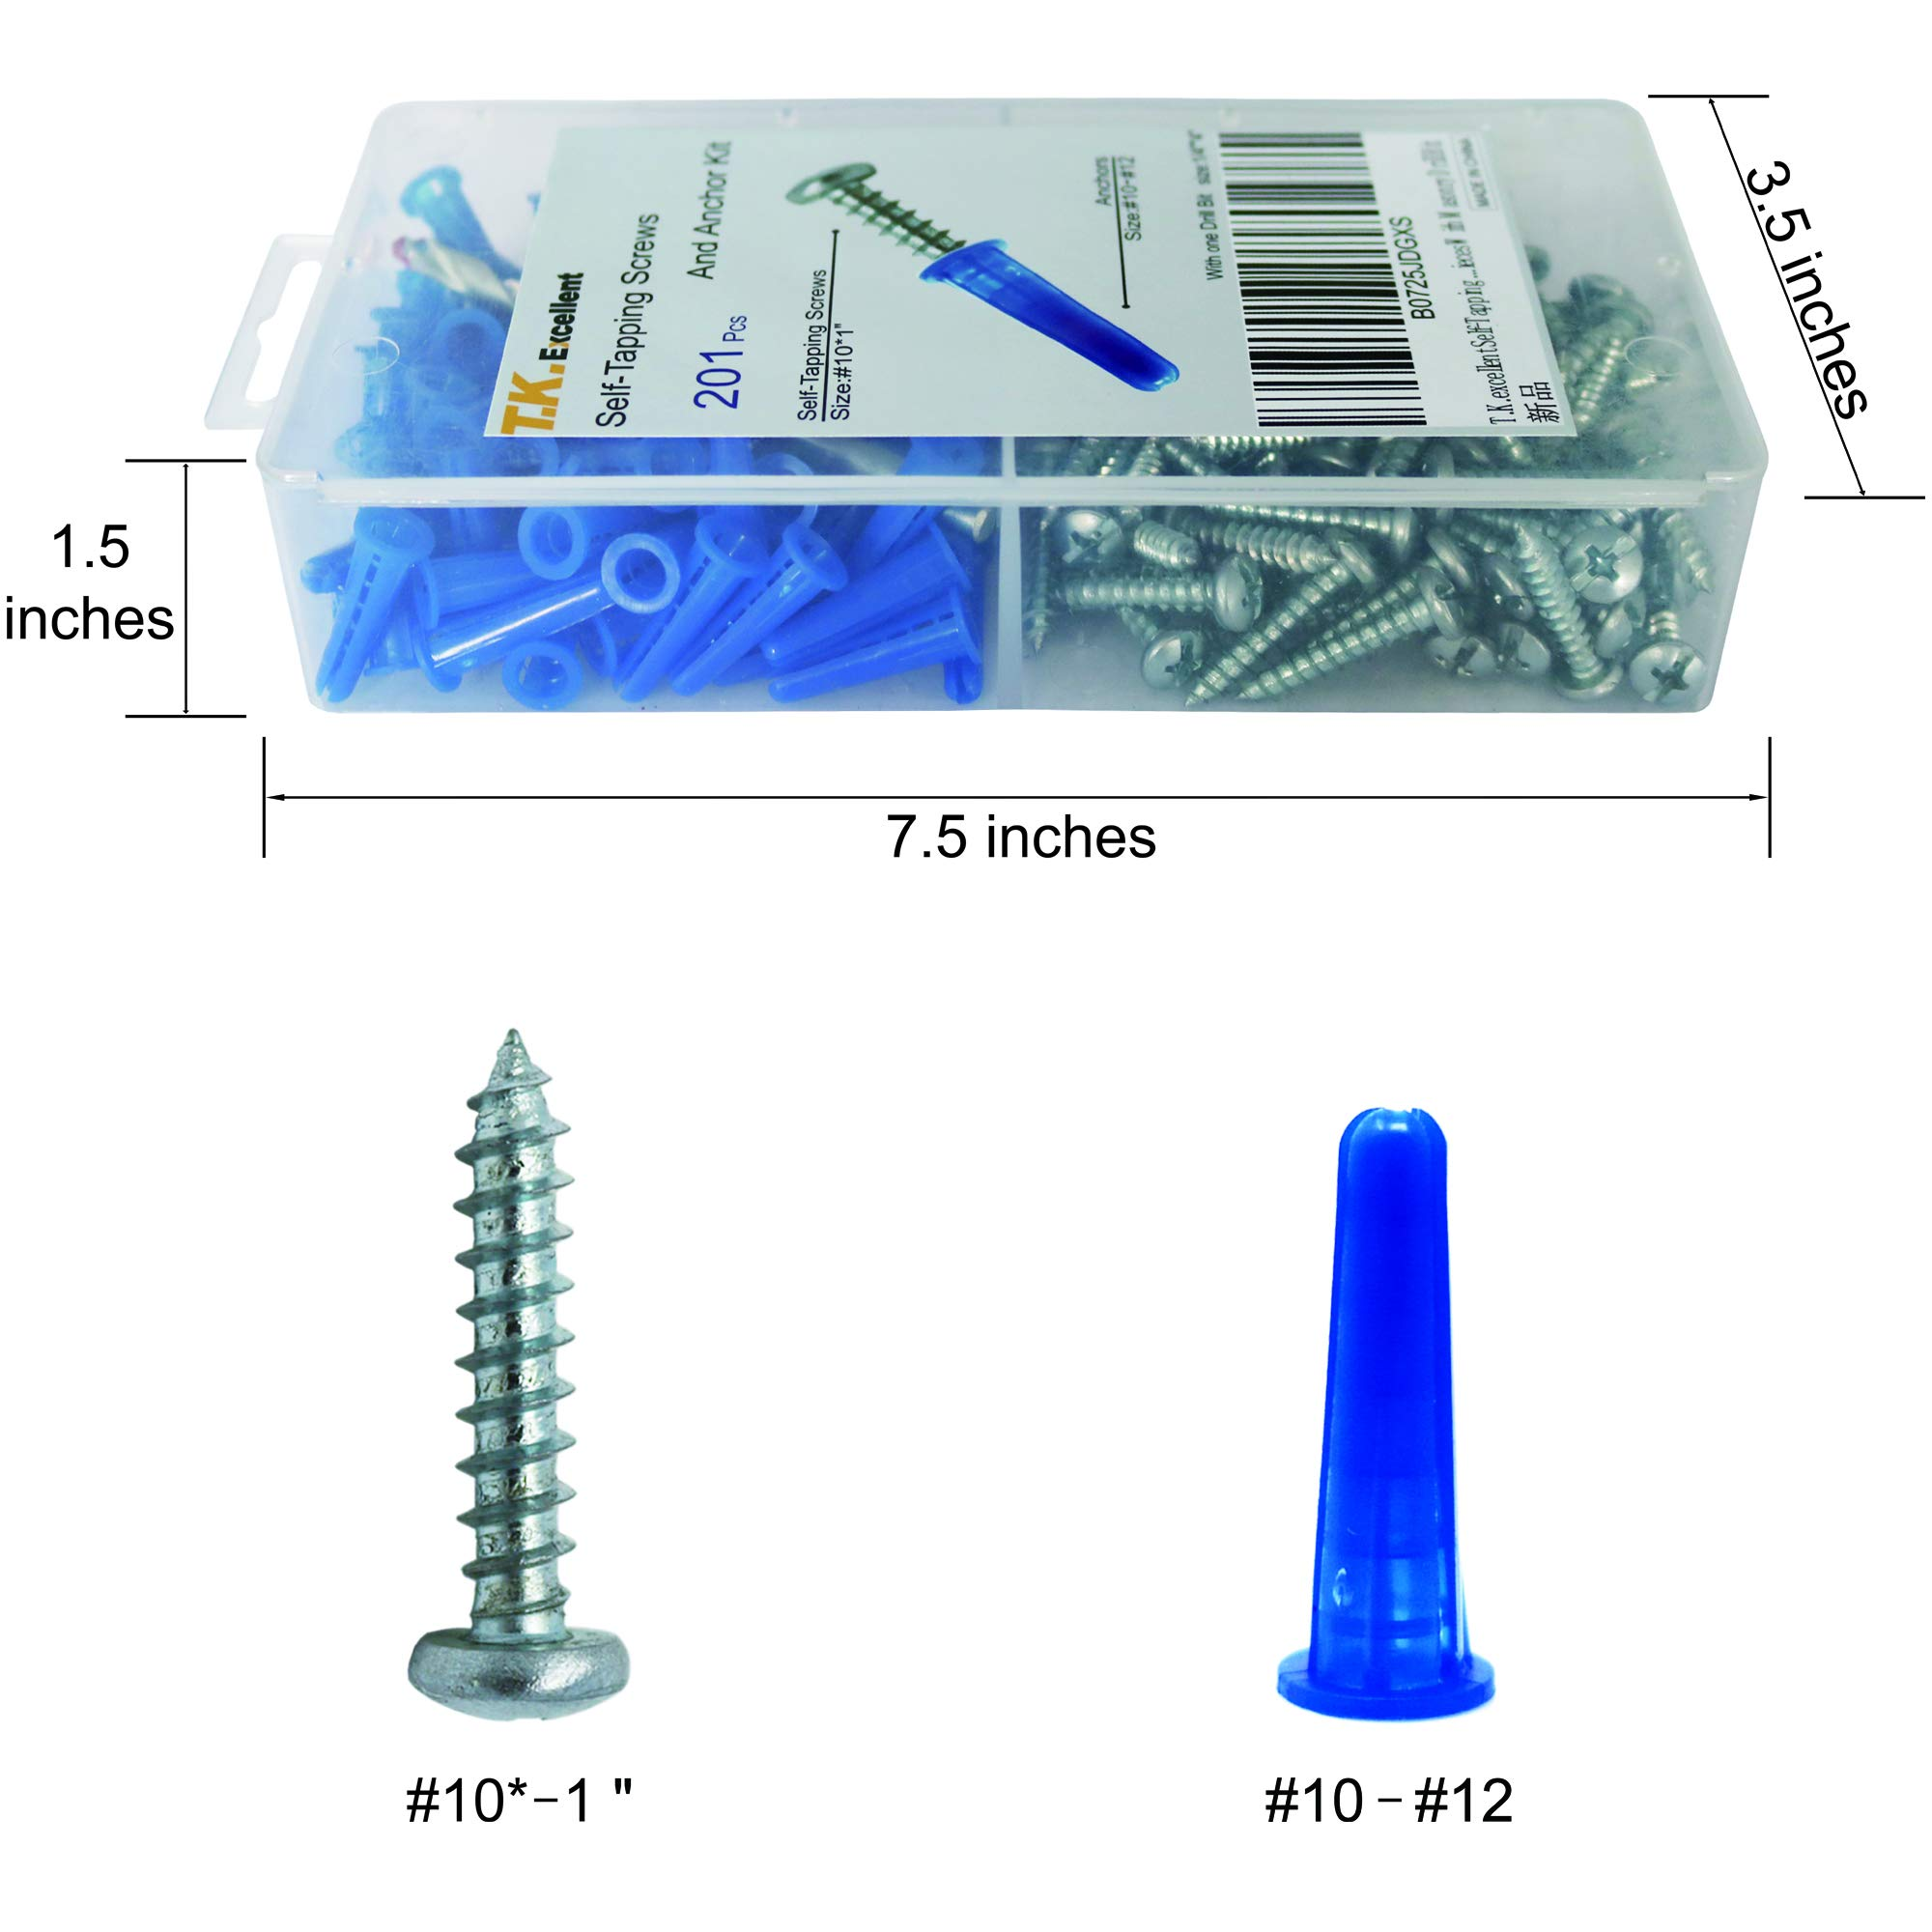 T.K.Excellent Blue Conical Plastic Anchor and Self Tapping Screw and Masonry Drill Bit,201 Pieces by T.K.excellent (Image #3)